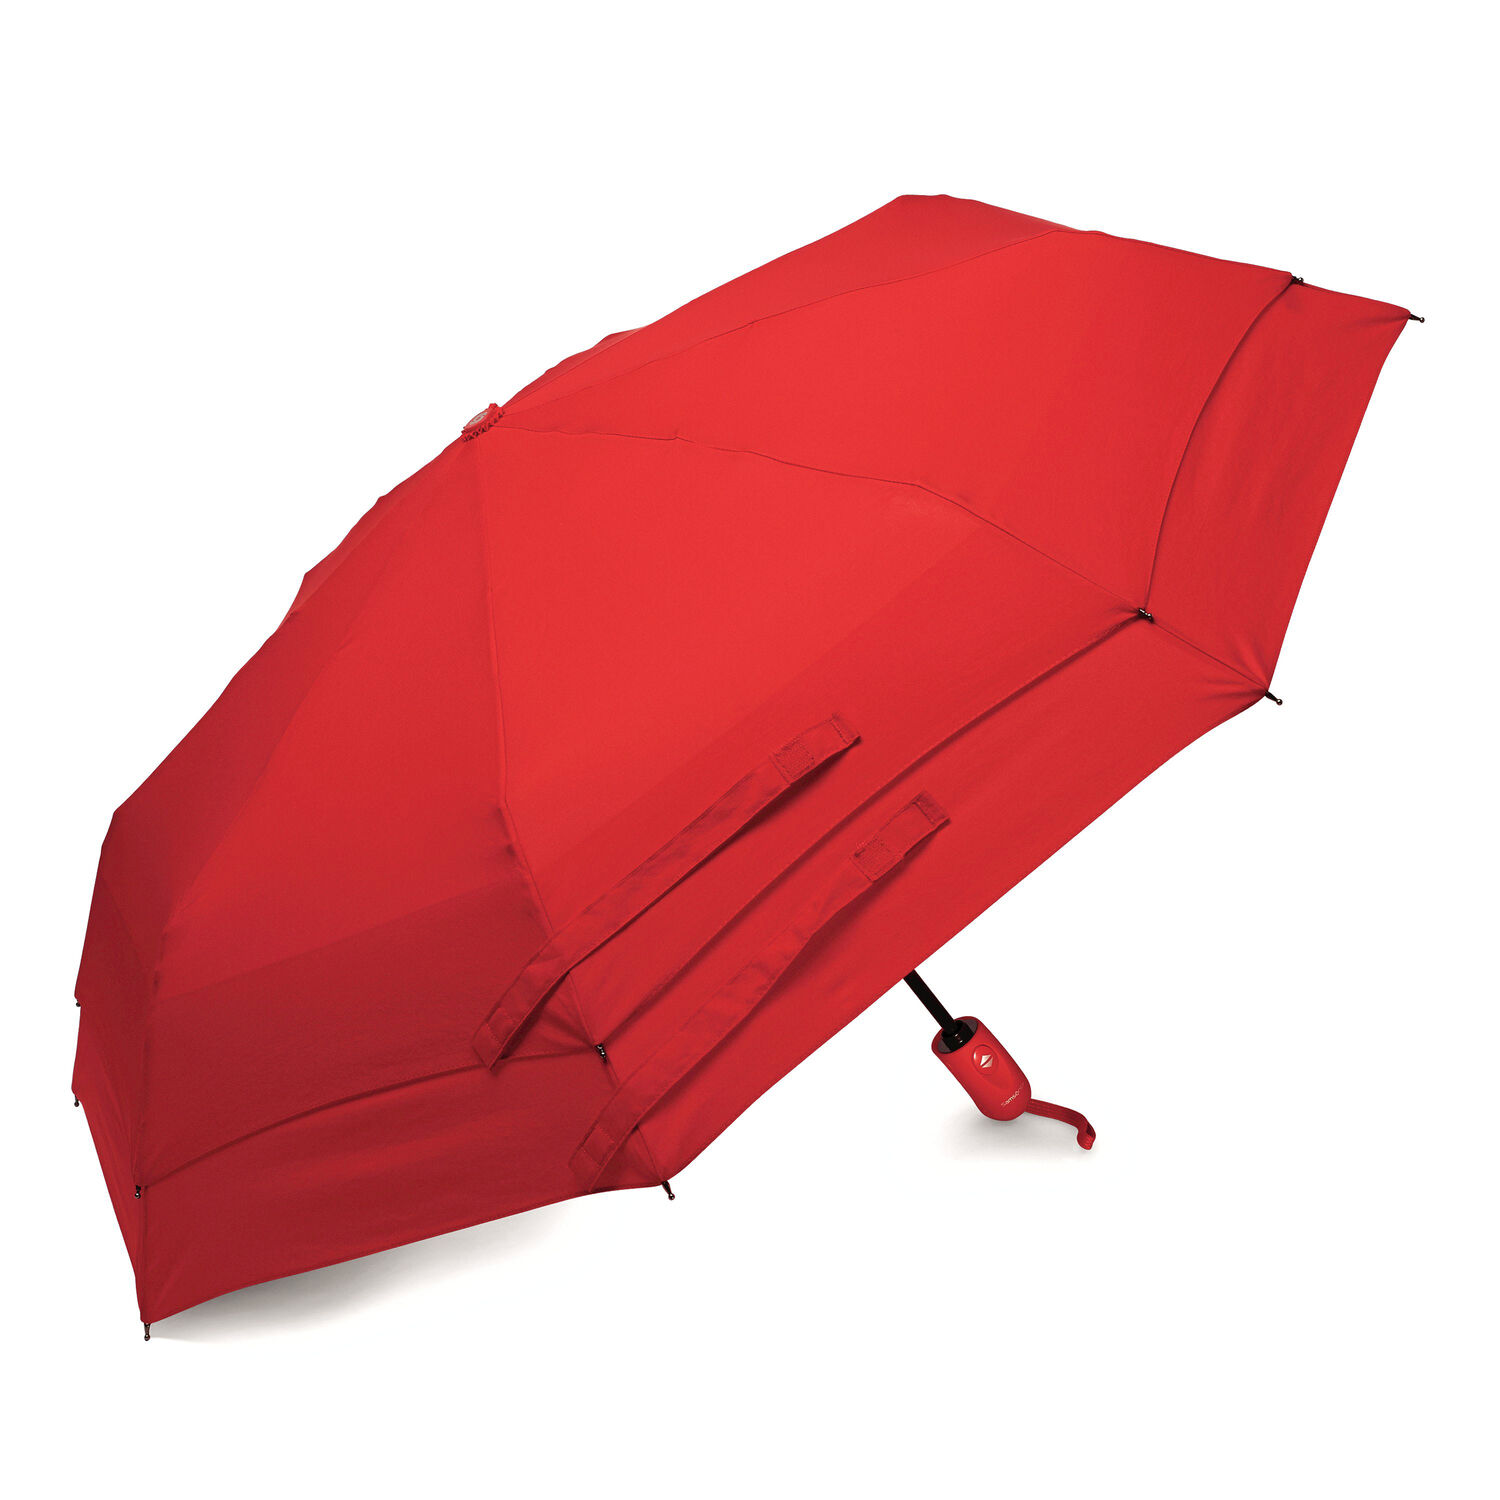 6010385f7d43 Samsonite Samsonite Windguard Auto Open/Close Umbrella